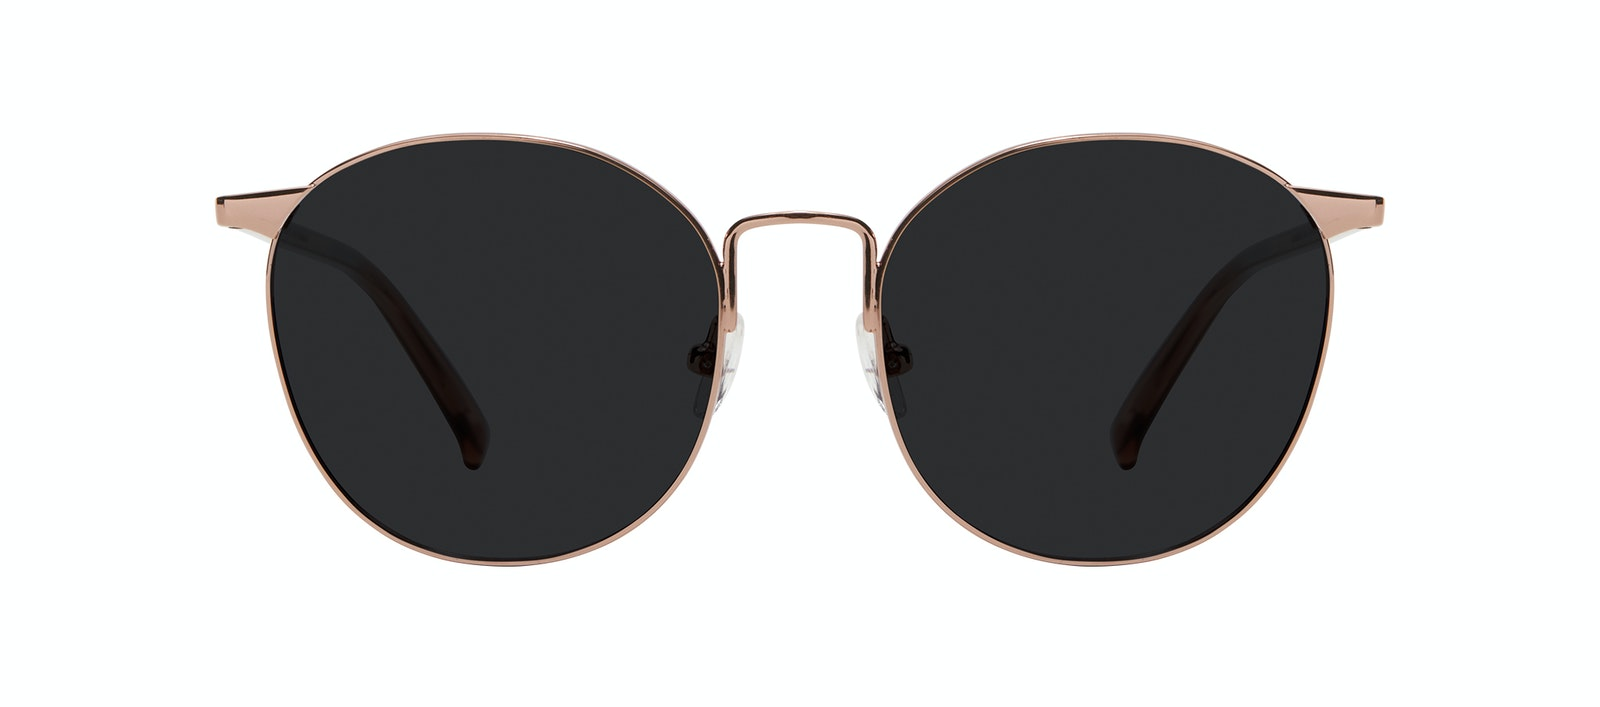 Affordable Fashion Glasses Round Sunglasses Women Romy Petite Crepuscule Front